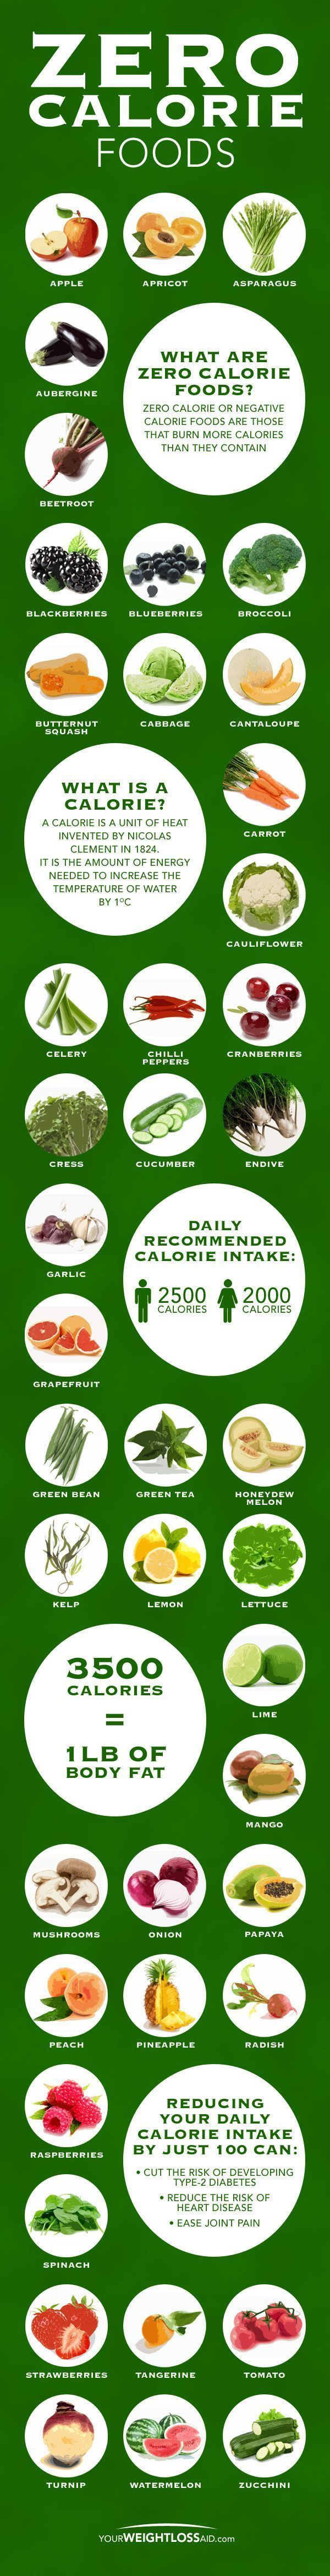 If you want to lose weight and simultaneously don't want to eat less Low calorie foods are the best choice for you. Find some fast working low calorie foods name. Learn the best way to lose weight fast. Please don't forget to share with your friends because sharing is caringn#Diet #diettips #LowcaloriefoodsnURL : https://www.facebook.com/SlimmingTipsBlogn